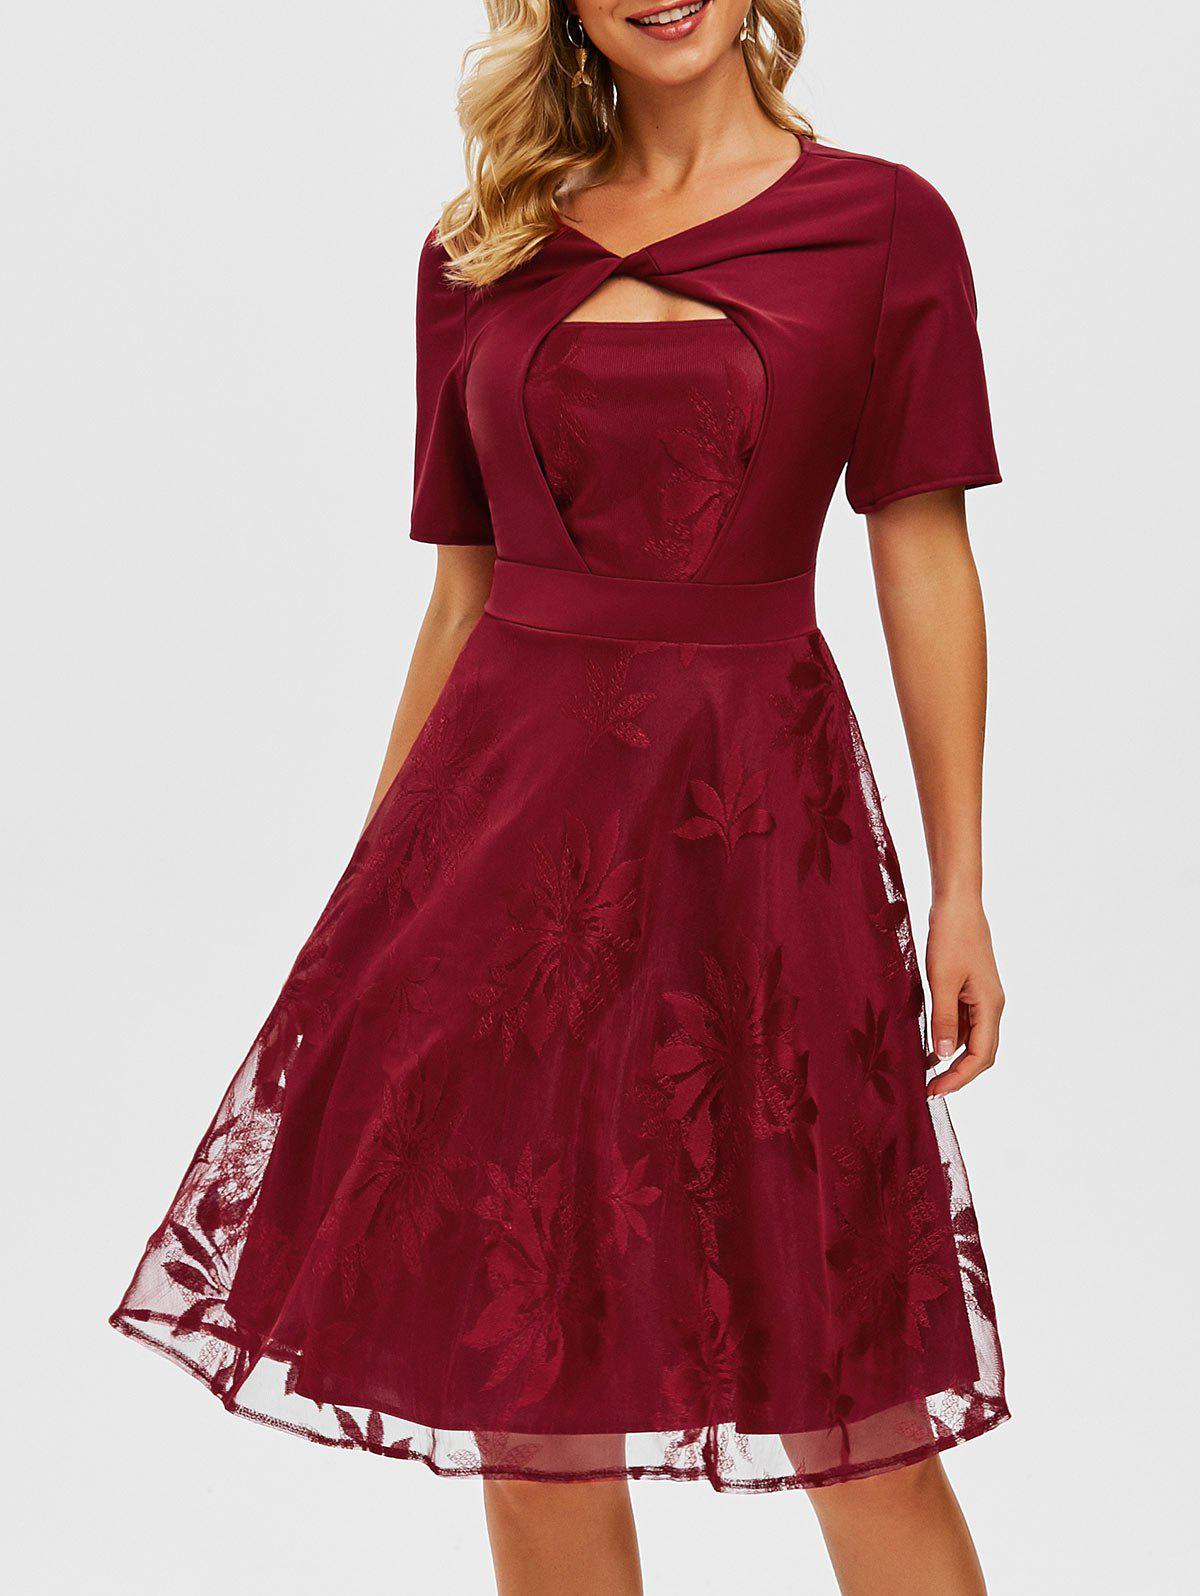 Lace Overlay Twisted Keyhole Dress - RED M